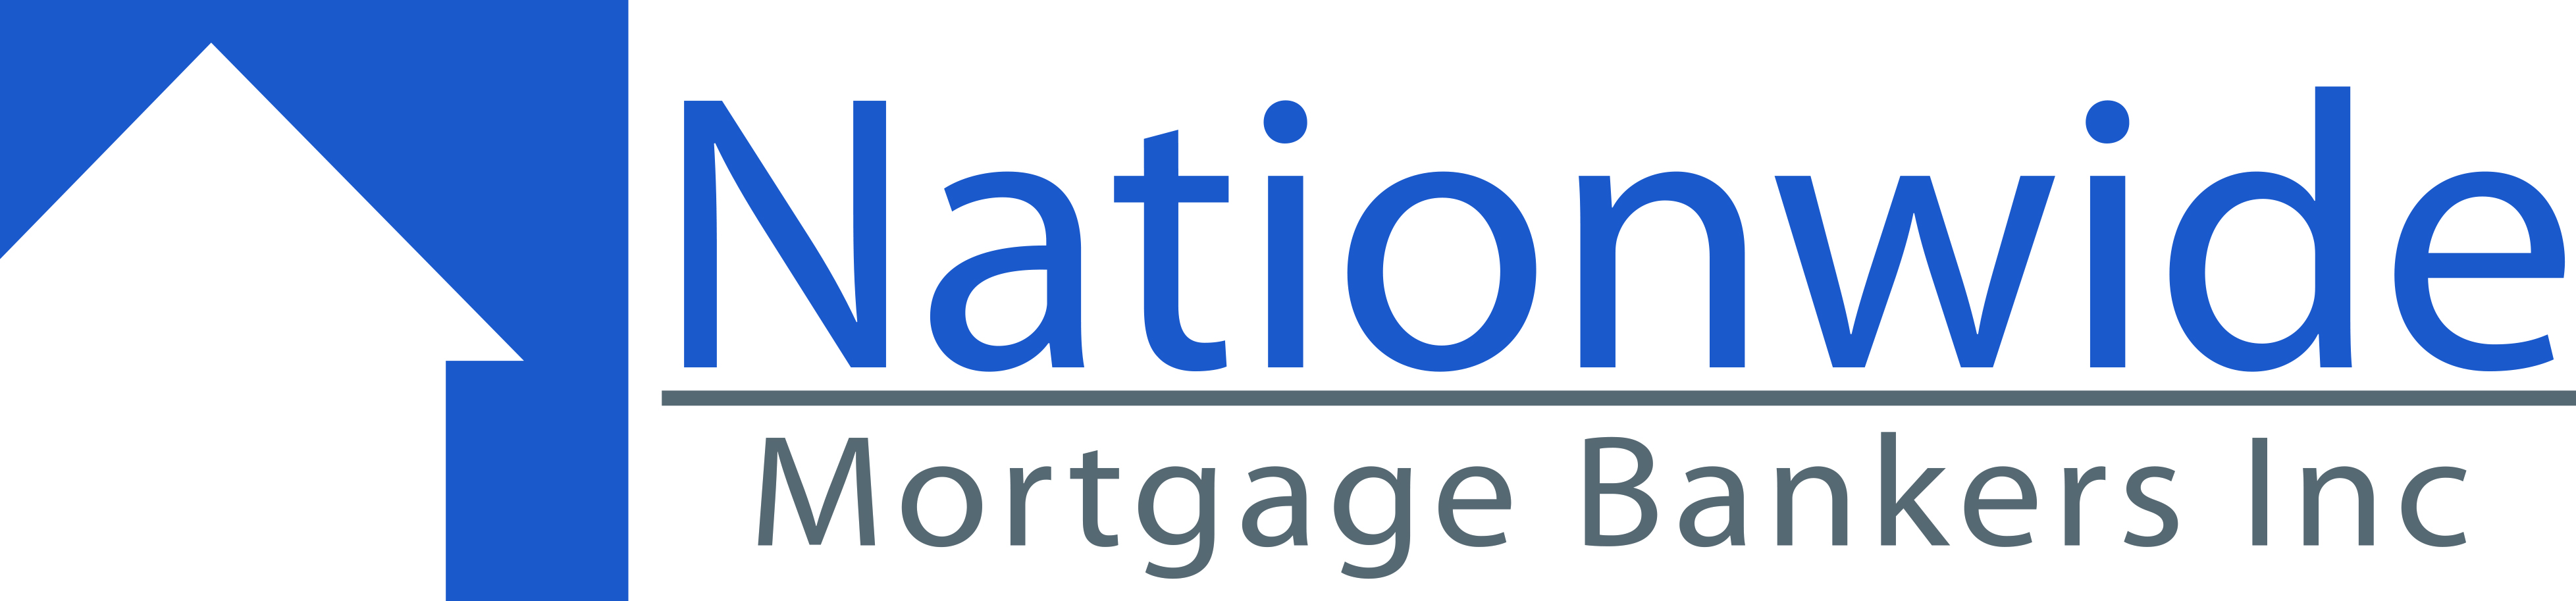 Nationwide Mortgage Bankers Inc. has hired Robert Jayne as its new Executive Vice President of Sales